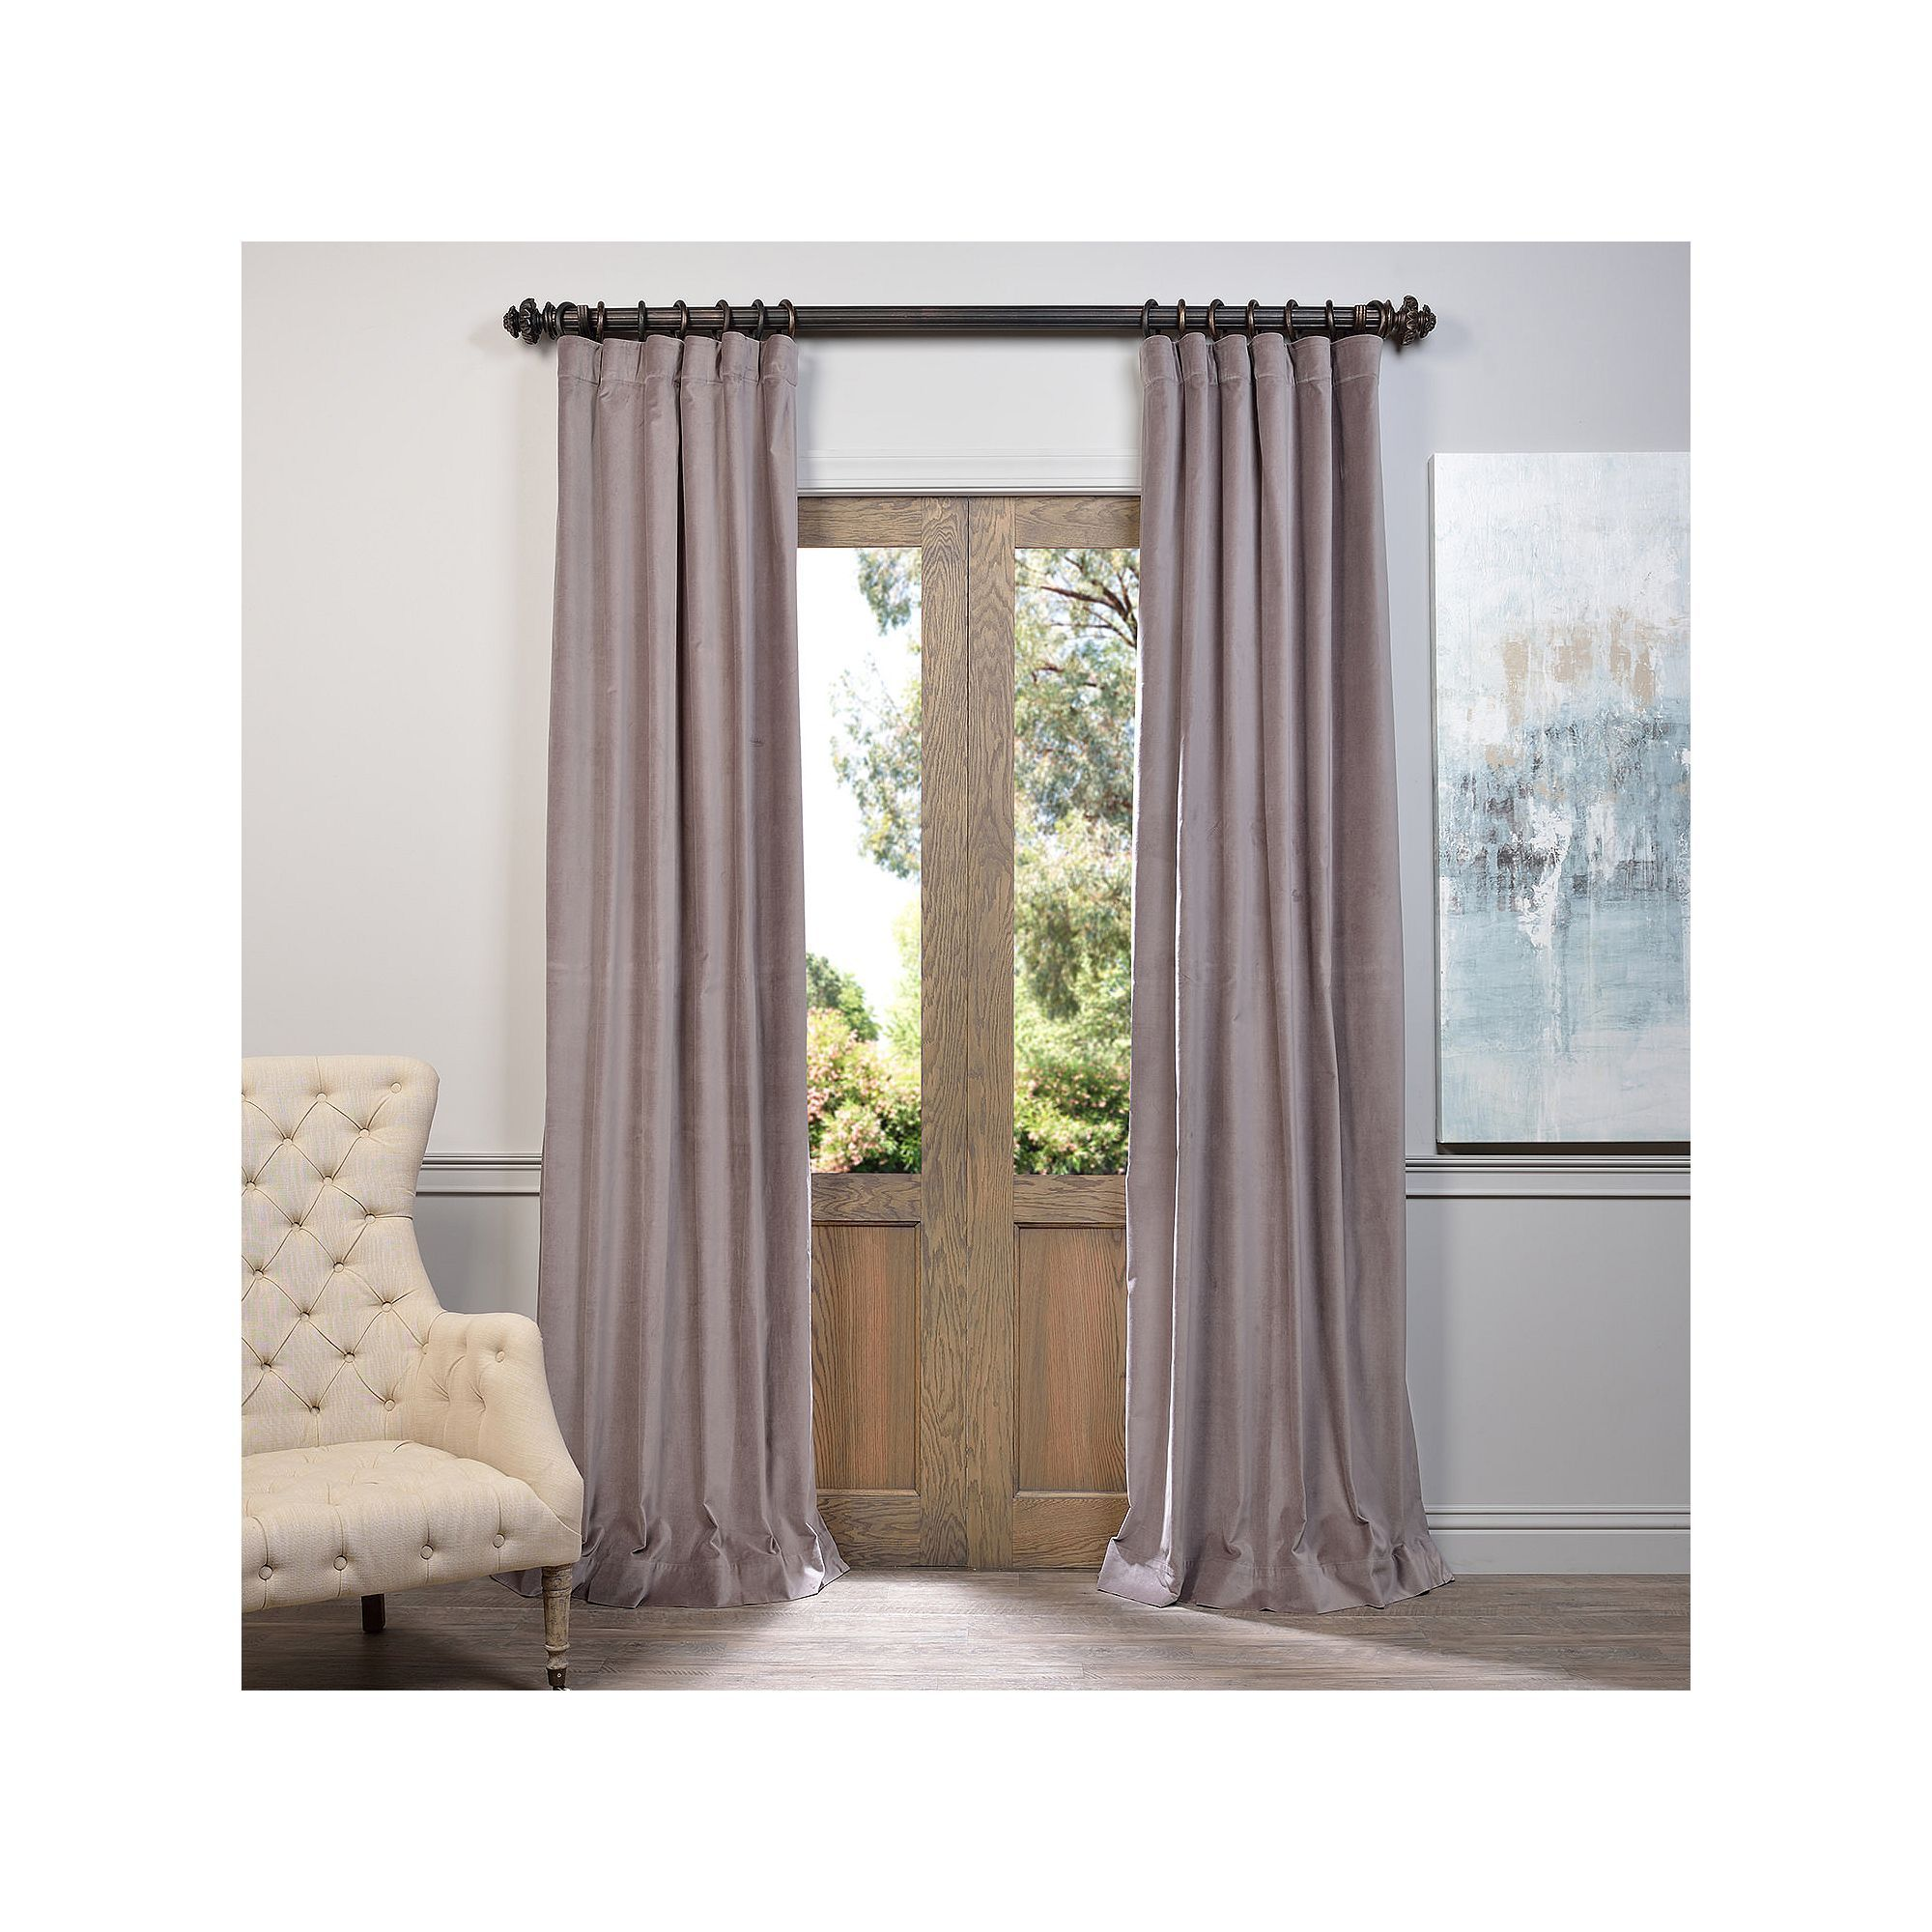 pottery band saw like drapes a you velvet perfection classic up in weekend inspiration kidding are them the amazing framed and last with barn an peyton drape img pink me that house crepe roll toile of